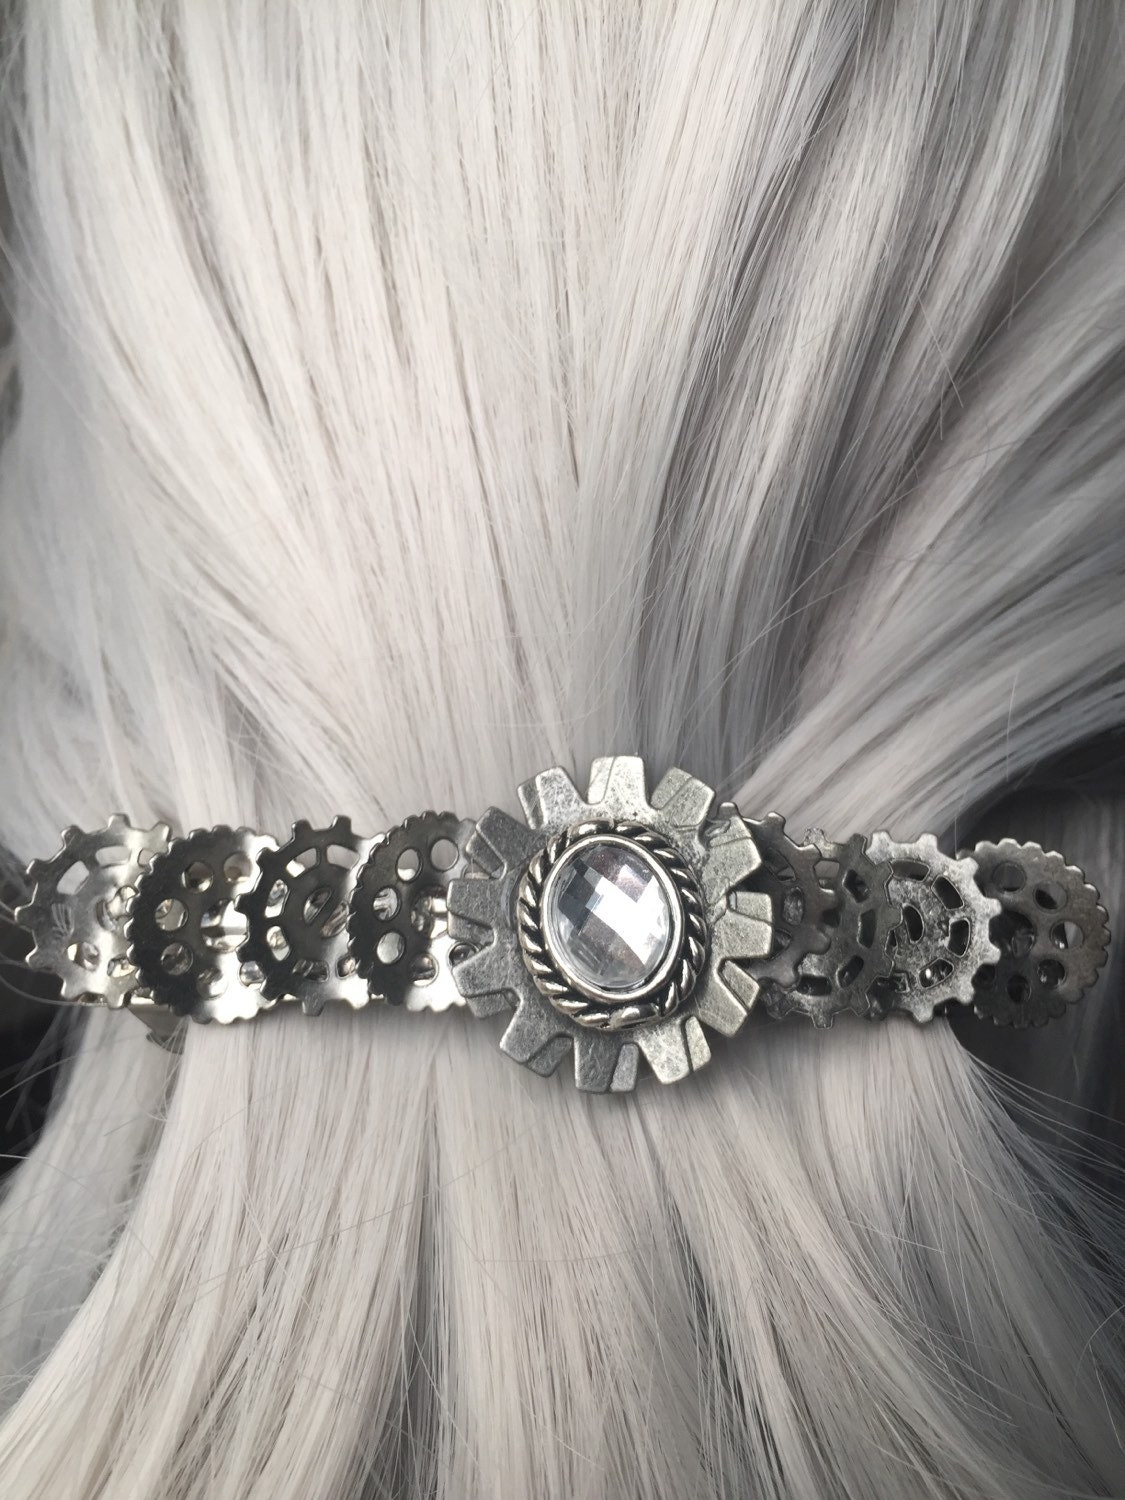 Shop Target for Silver Hair Accessories you will love at great low prices. Spend $35+ or use your REDcard & get free 2-day shipping on most items or same-day pick-up in store.